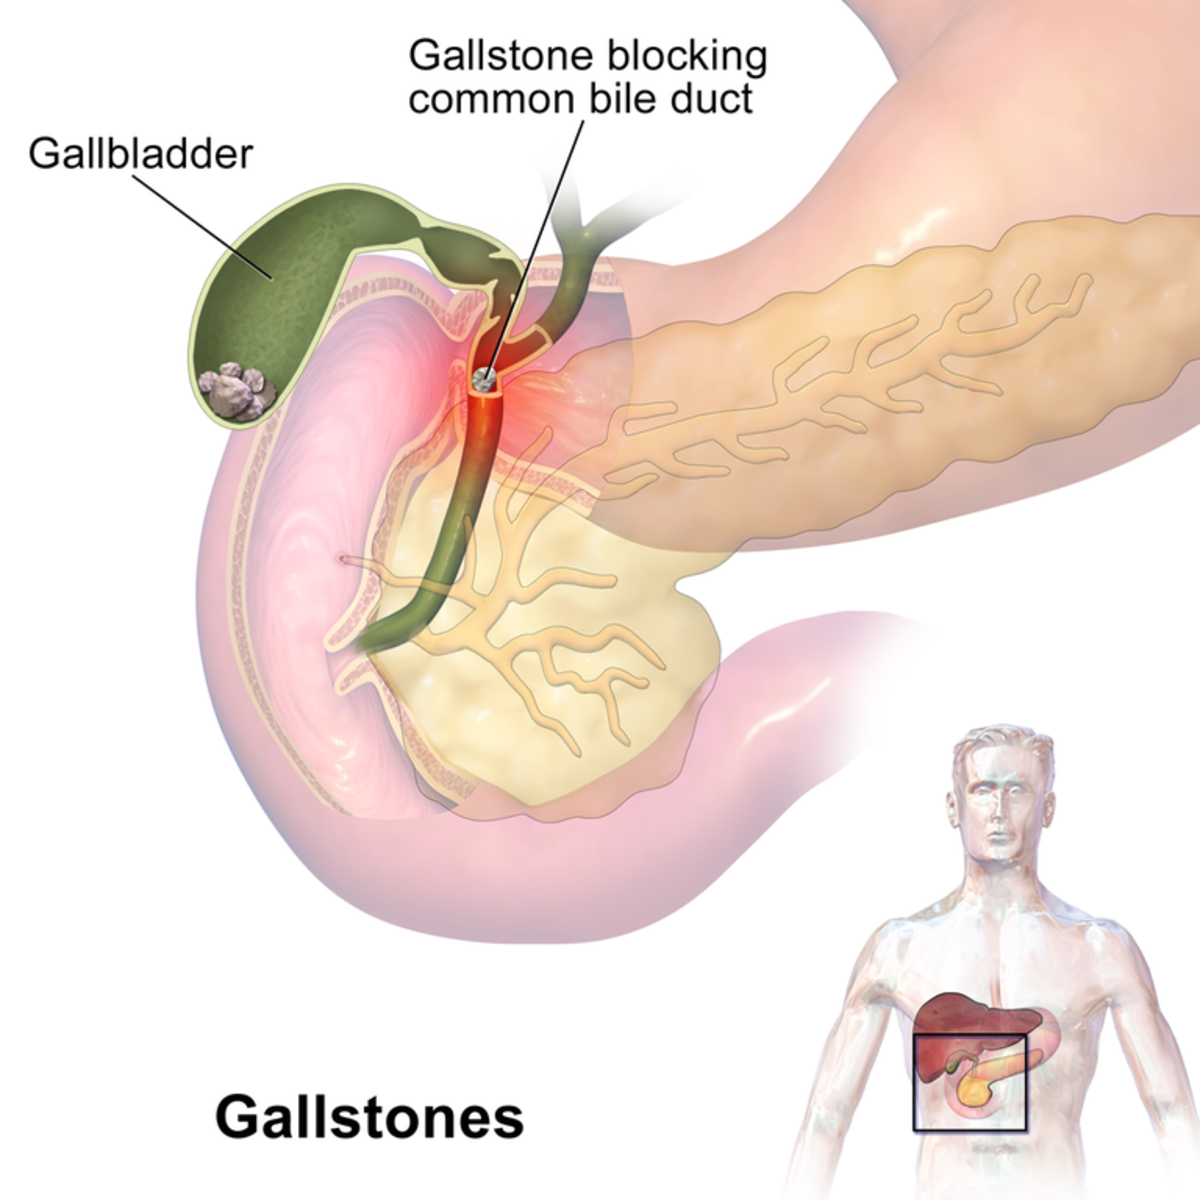 Location of gallstones